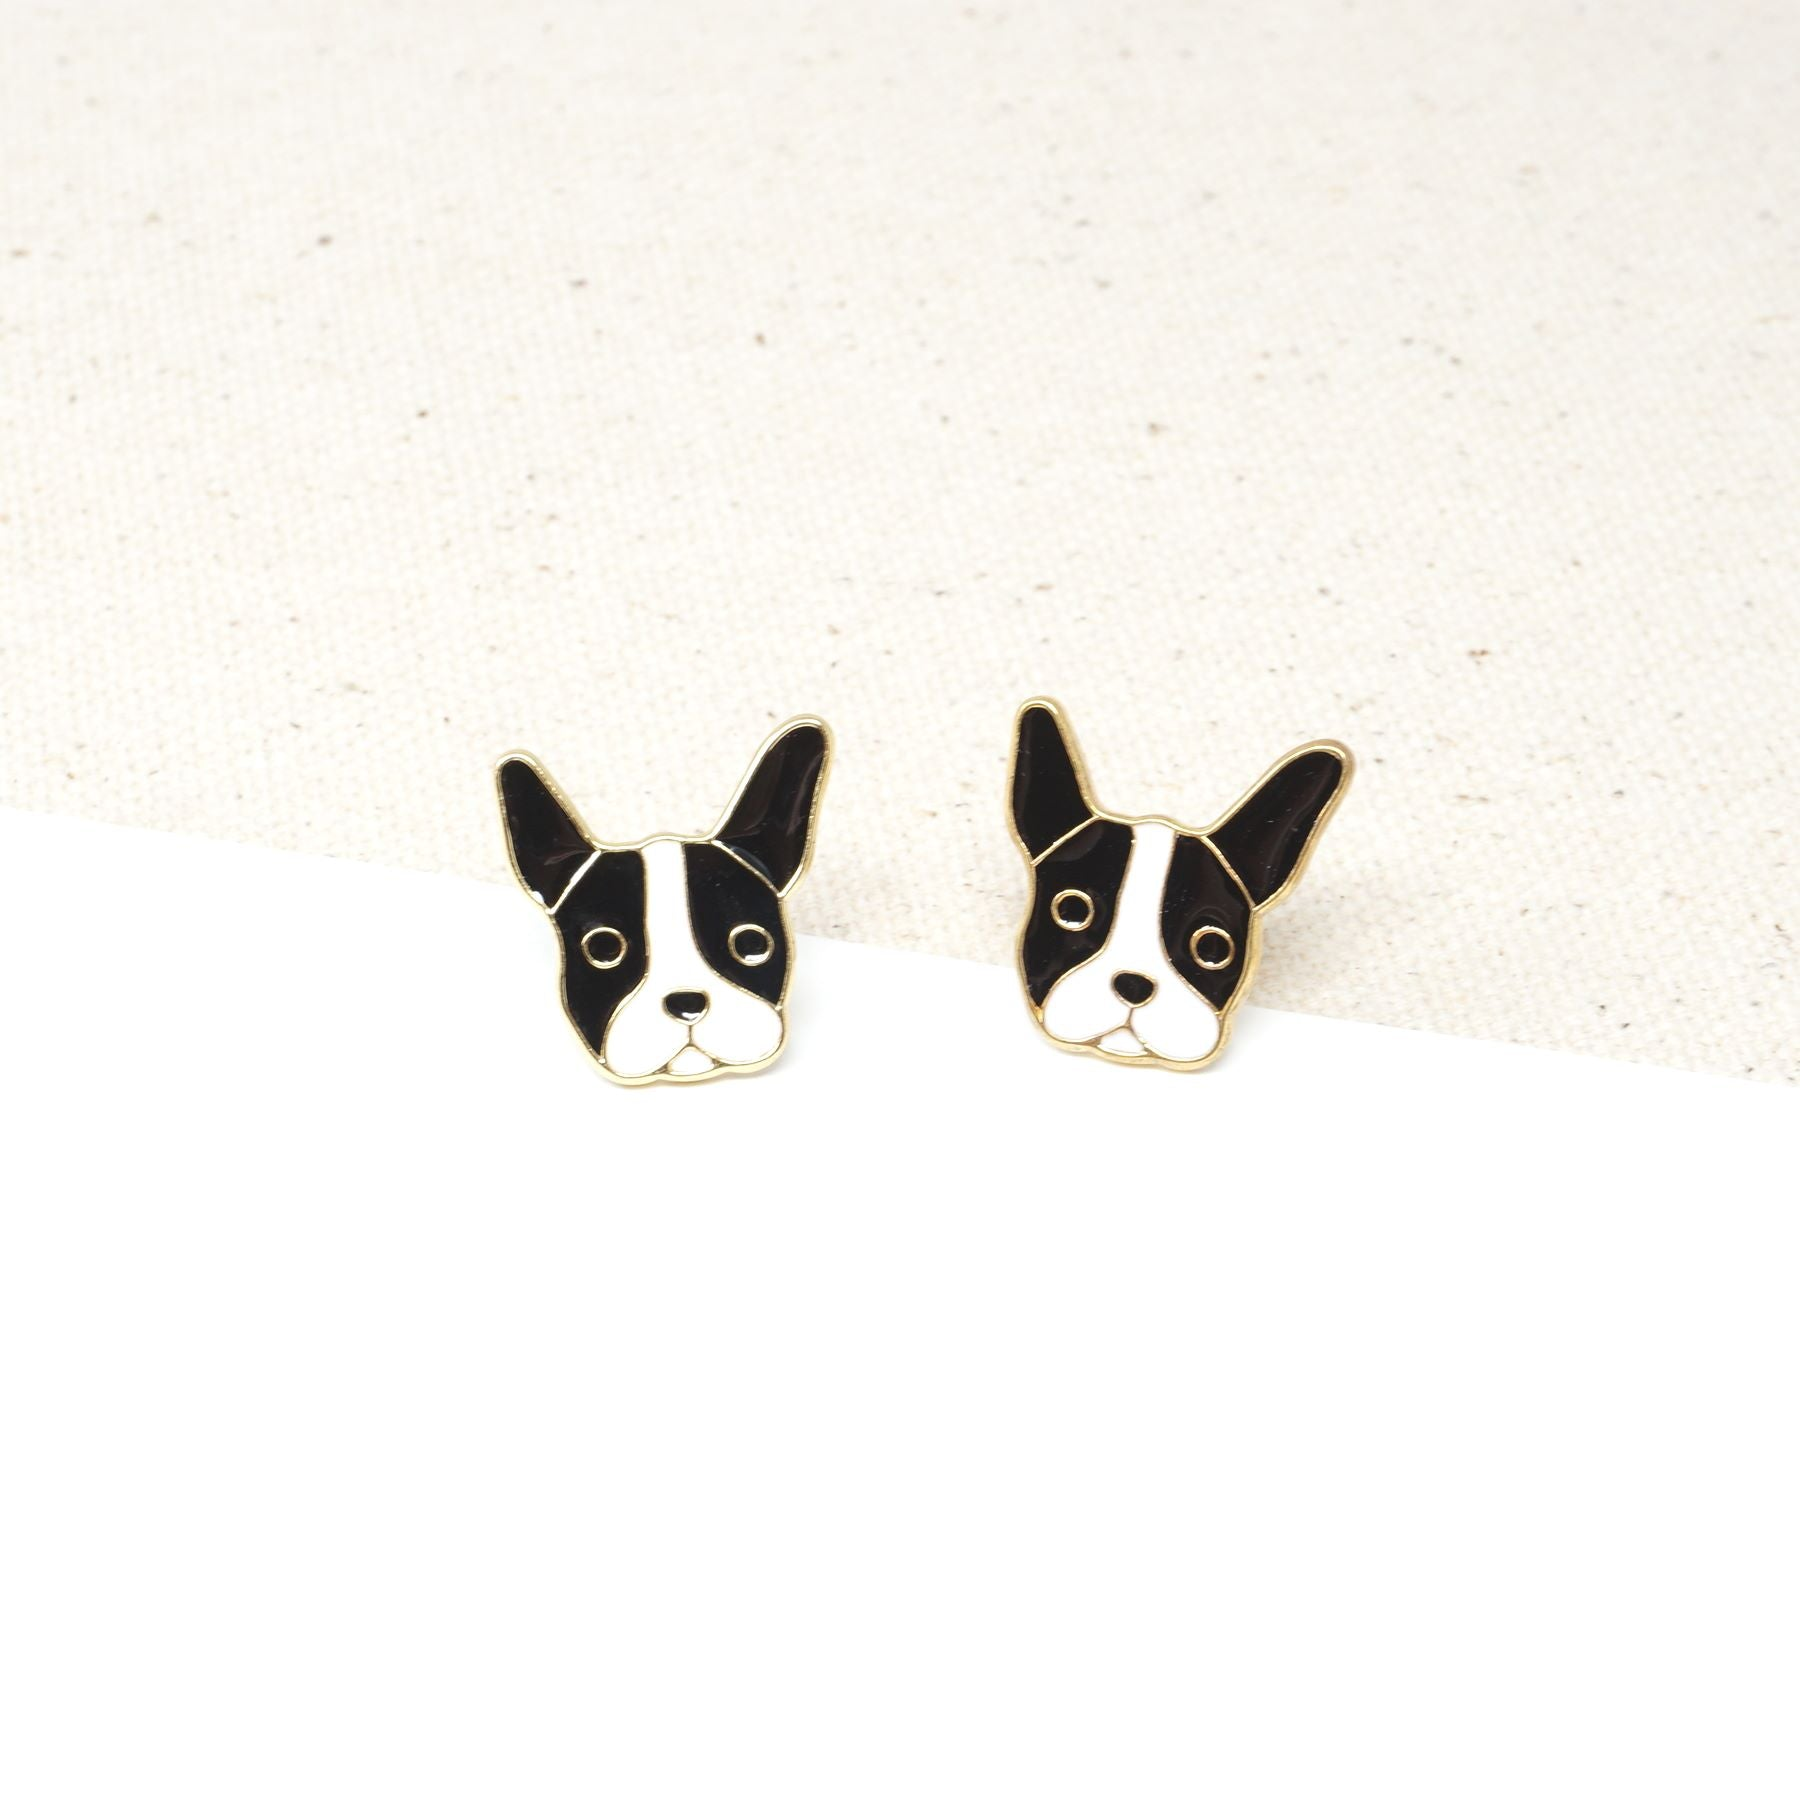 Handcrafted Bulldog Enamel Stud Earrings